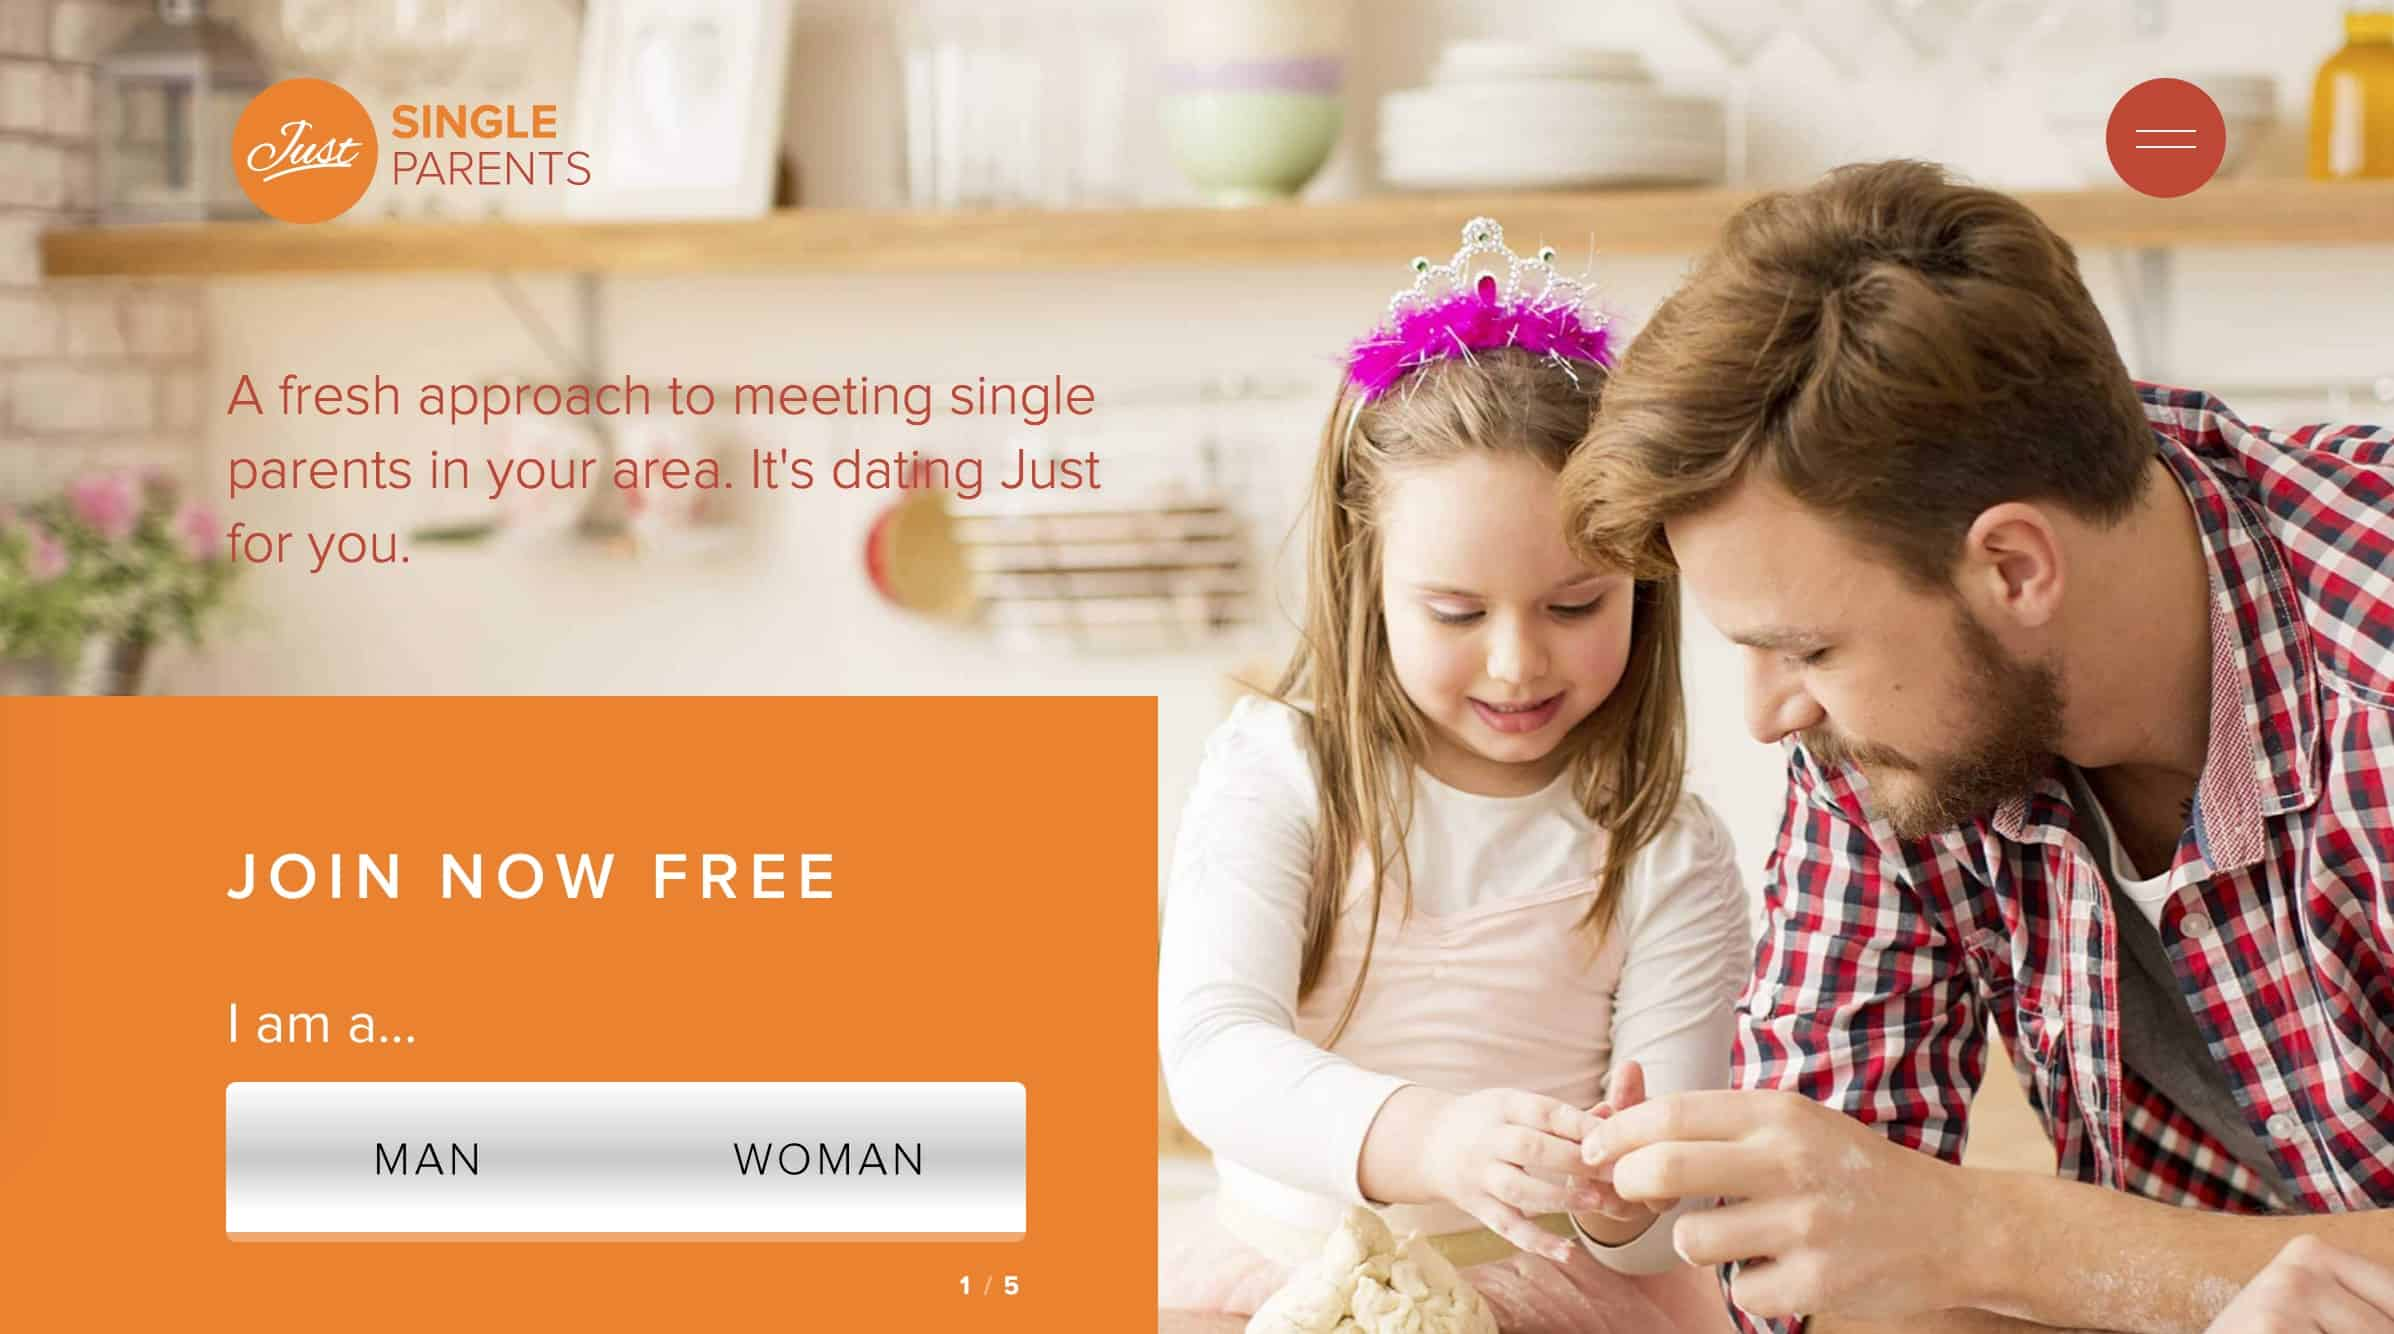 chana single parent dating site Mums date dads is a 100% free online dating site for single parents that is based in the united kingdom with a regular membership single parent dating sites.